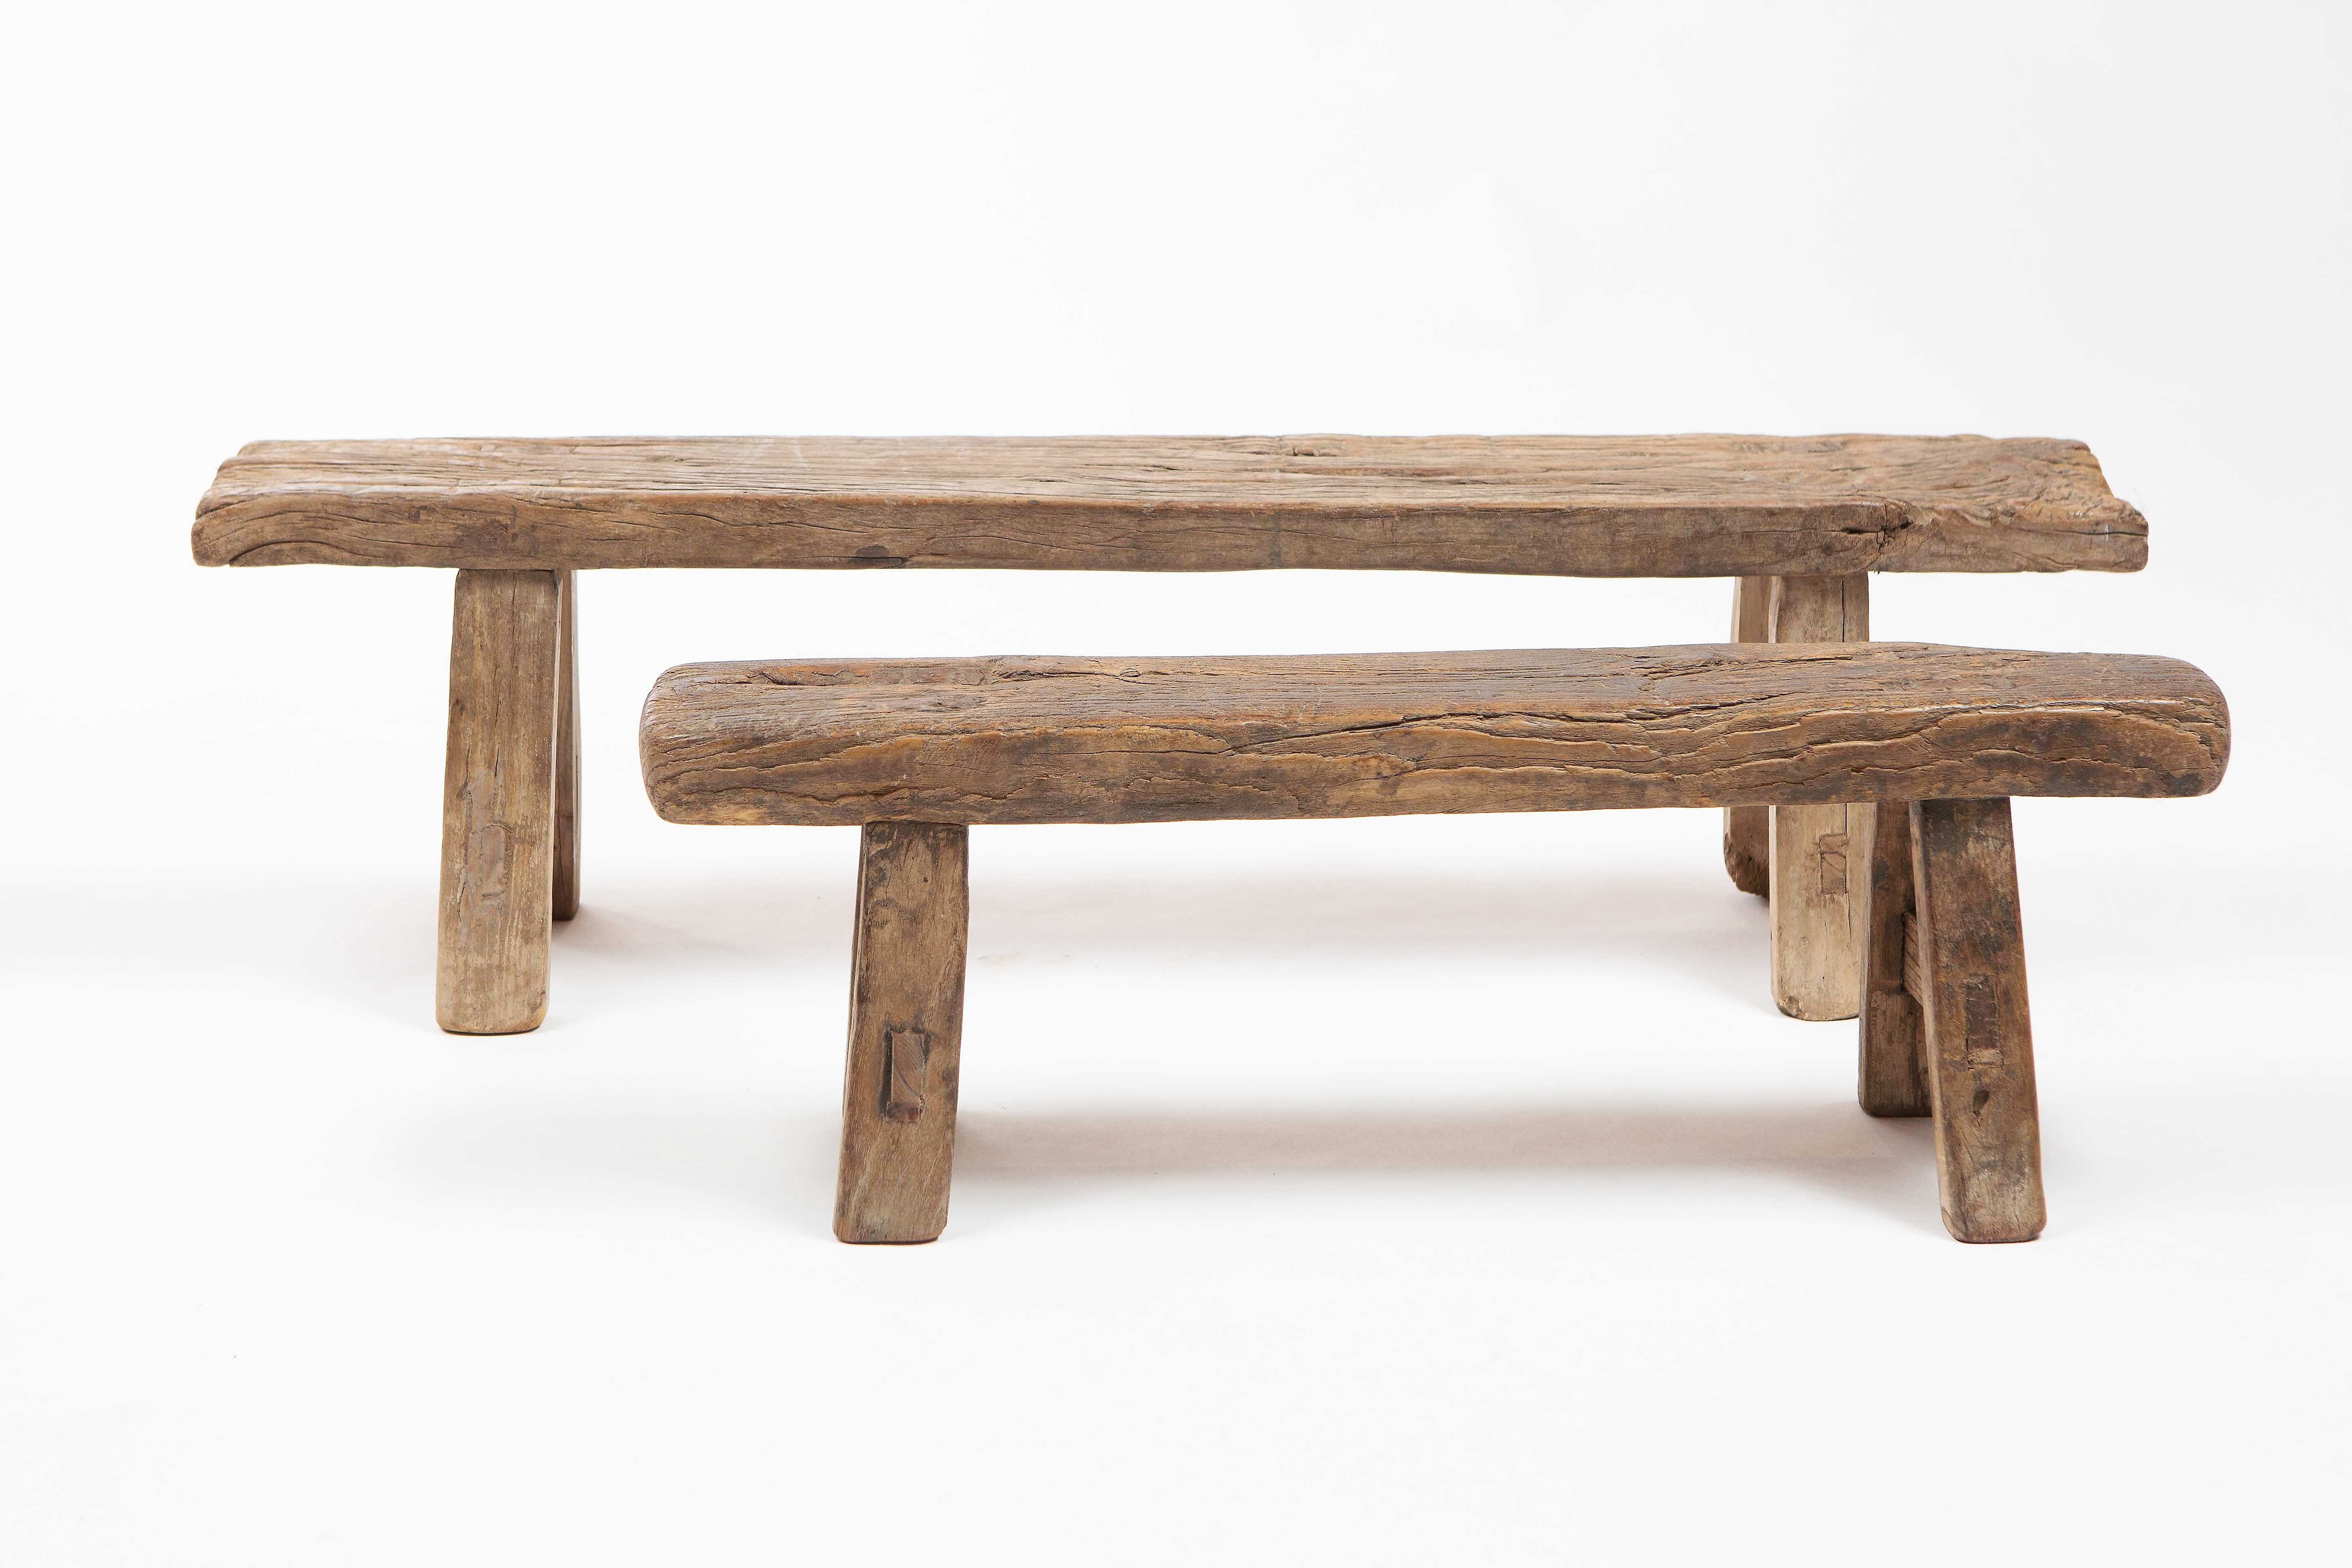 Antique Chinese Small Wooden Benches In 2020